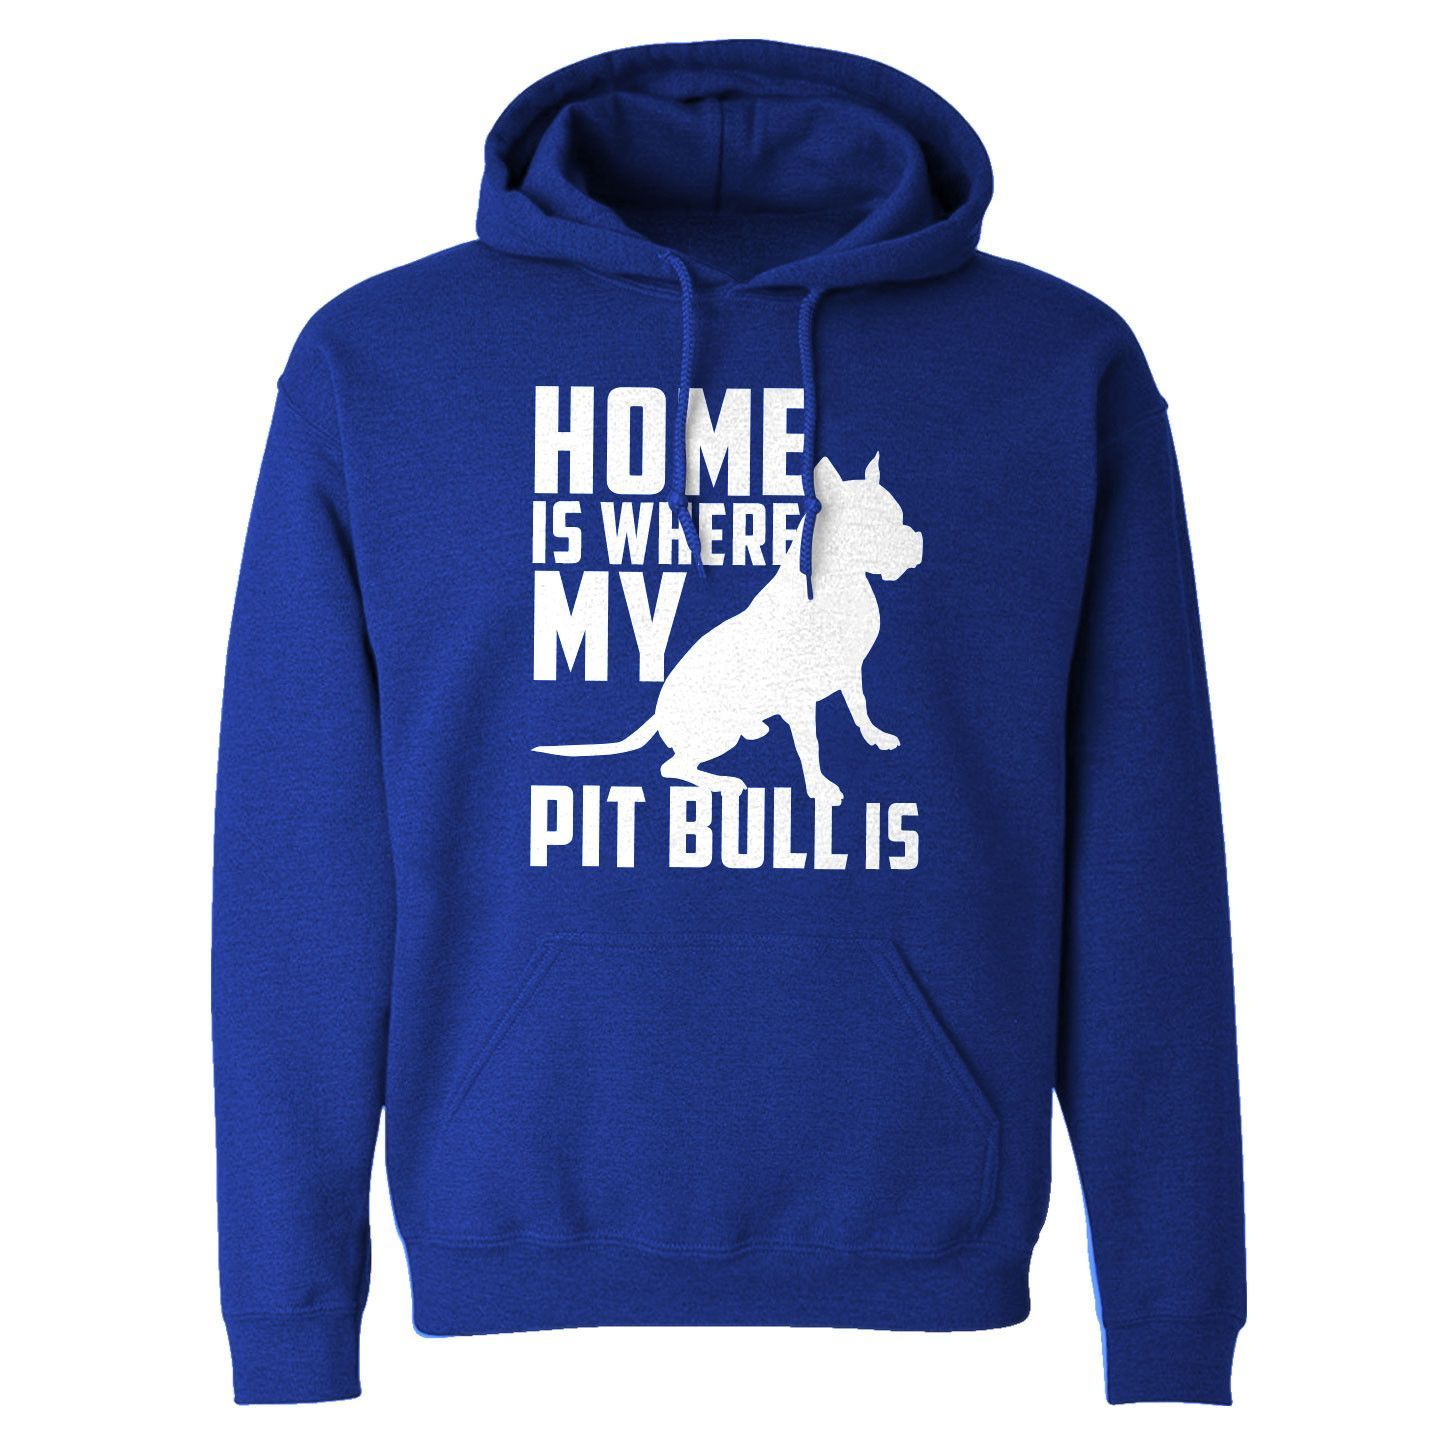 Home is Where my Pit Bull is Adult Hoodie Sweatshirt